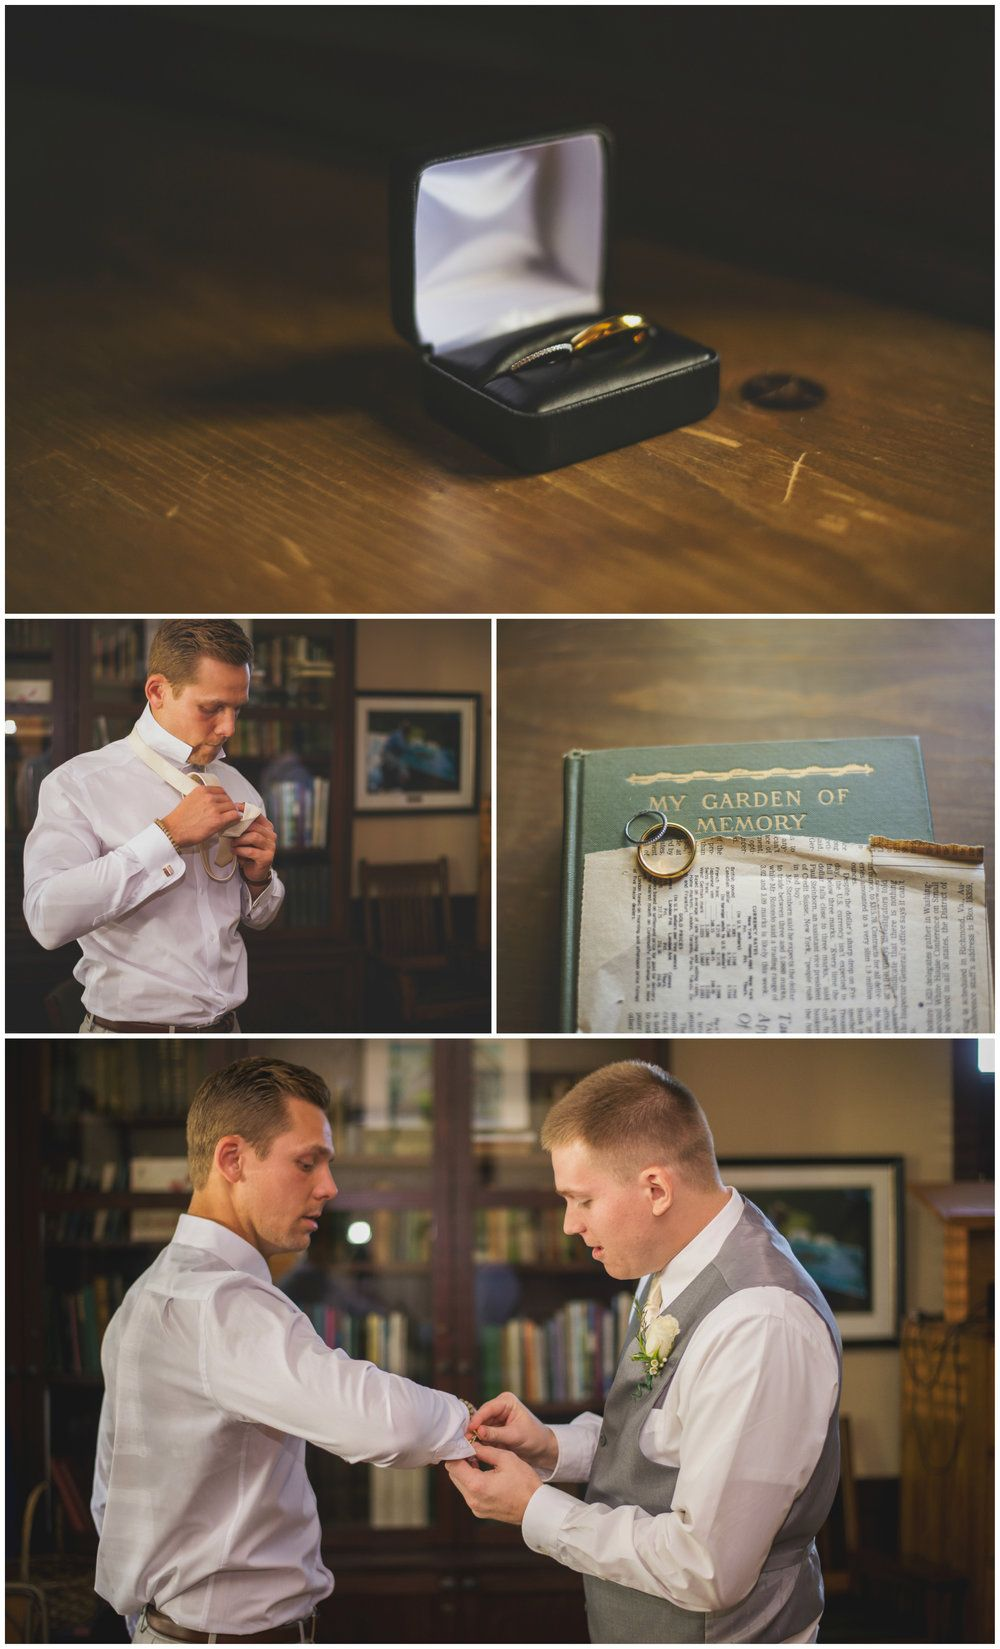 Ryen & Dustin's Lake Geneva Wedding Day — HMS Photography